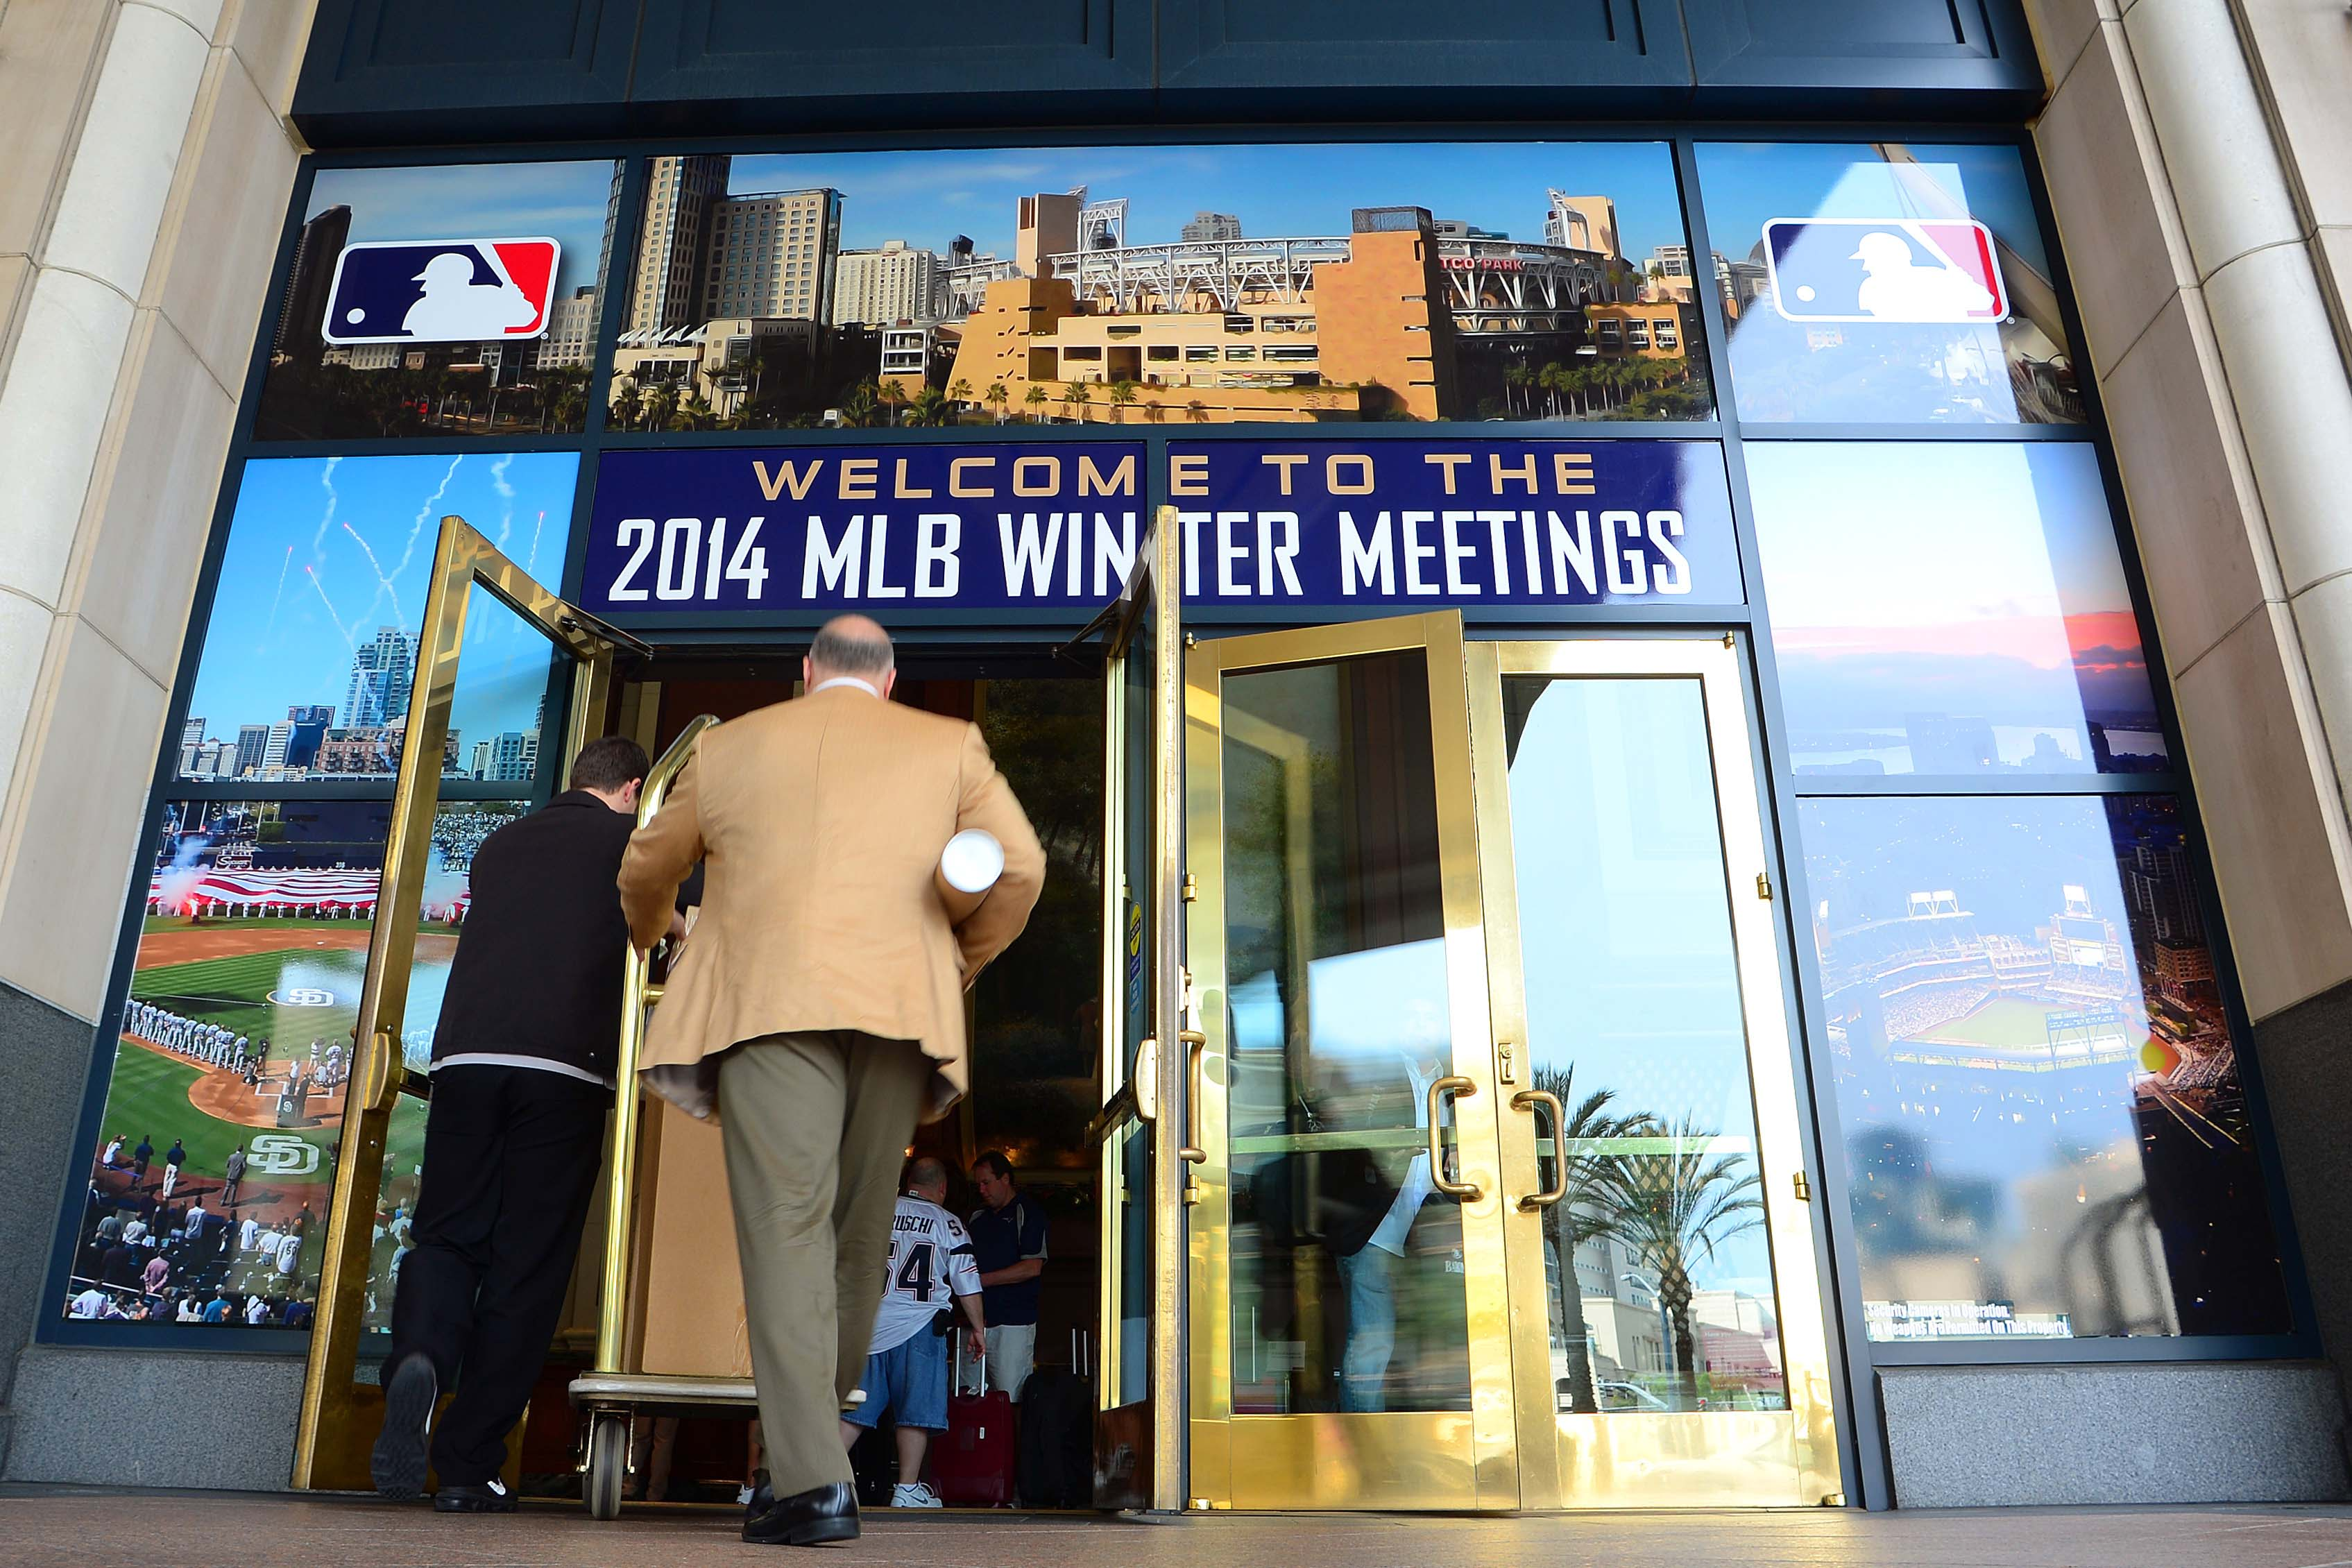 The entrance to the 2014 MLB Winter Meetings in San Diego, CA which is a stark contrast in climate to Nashville, TN.